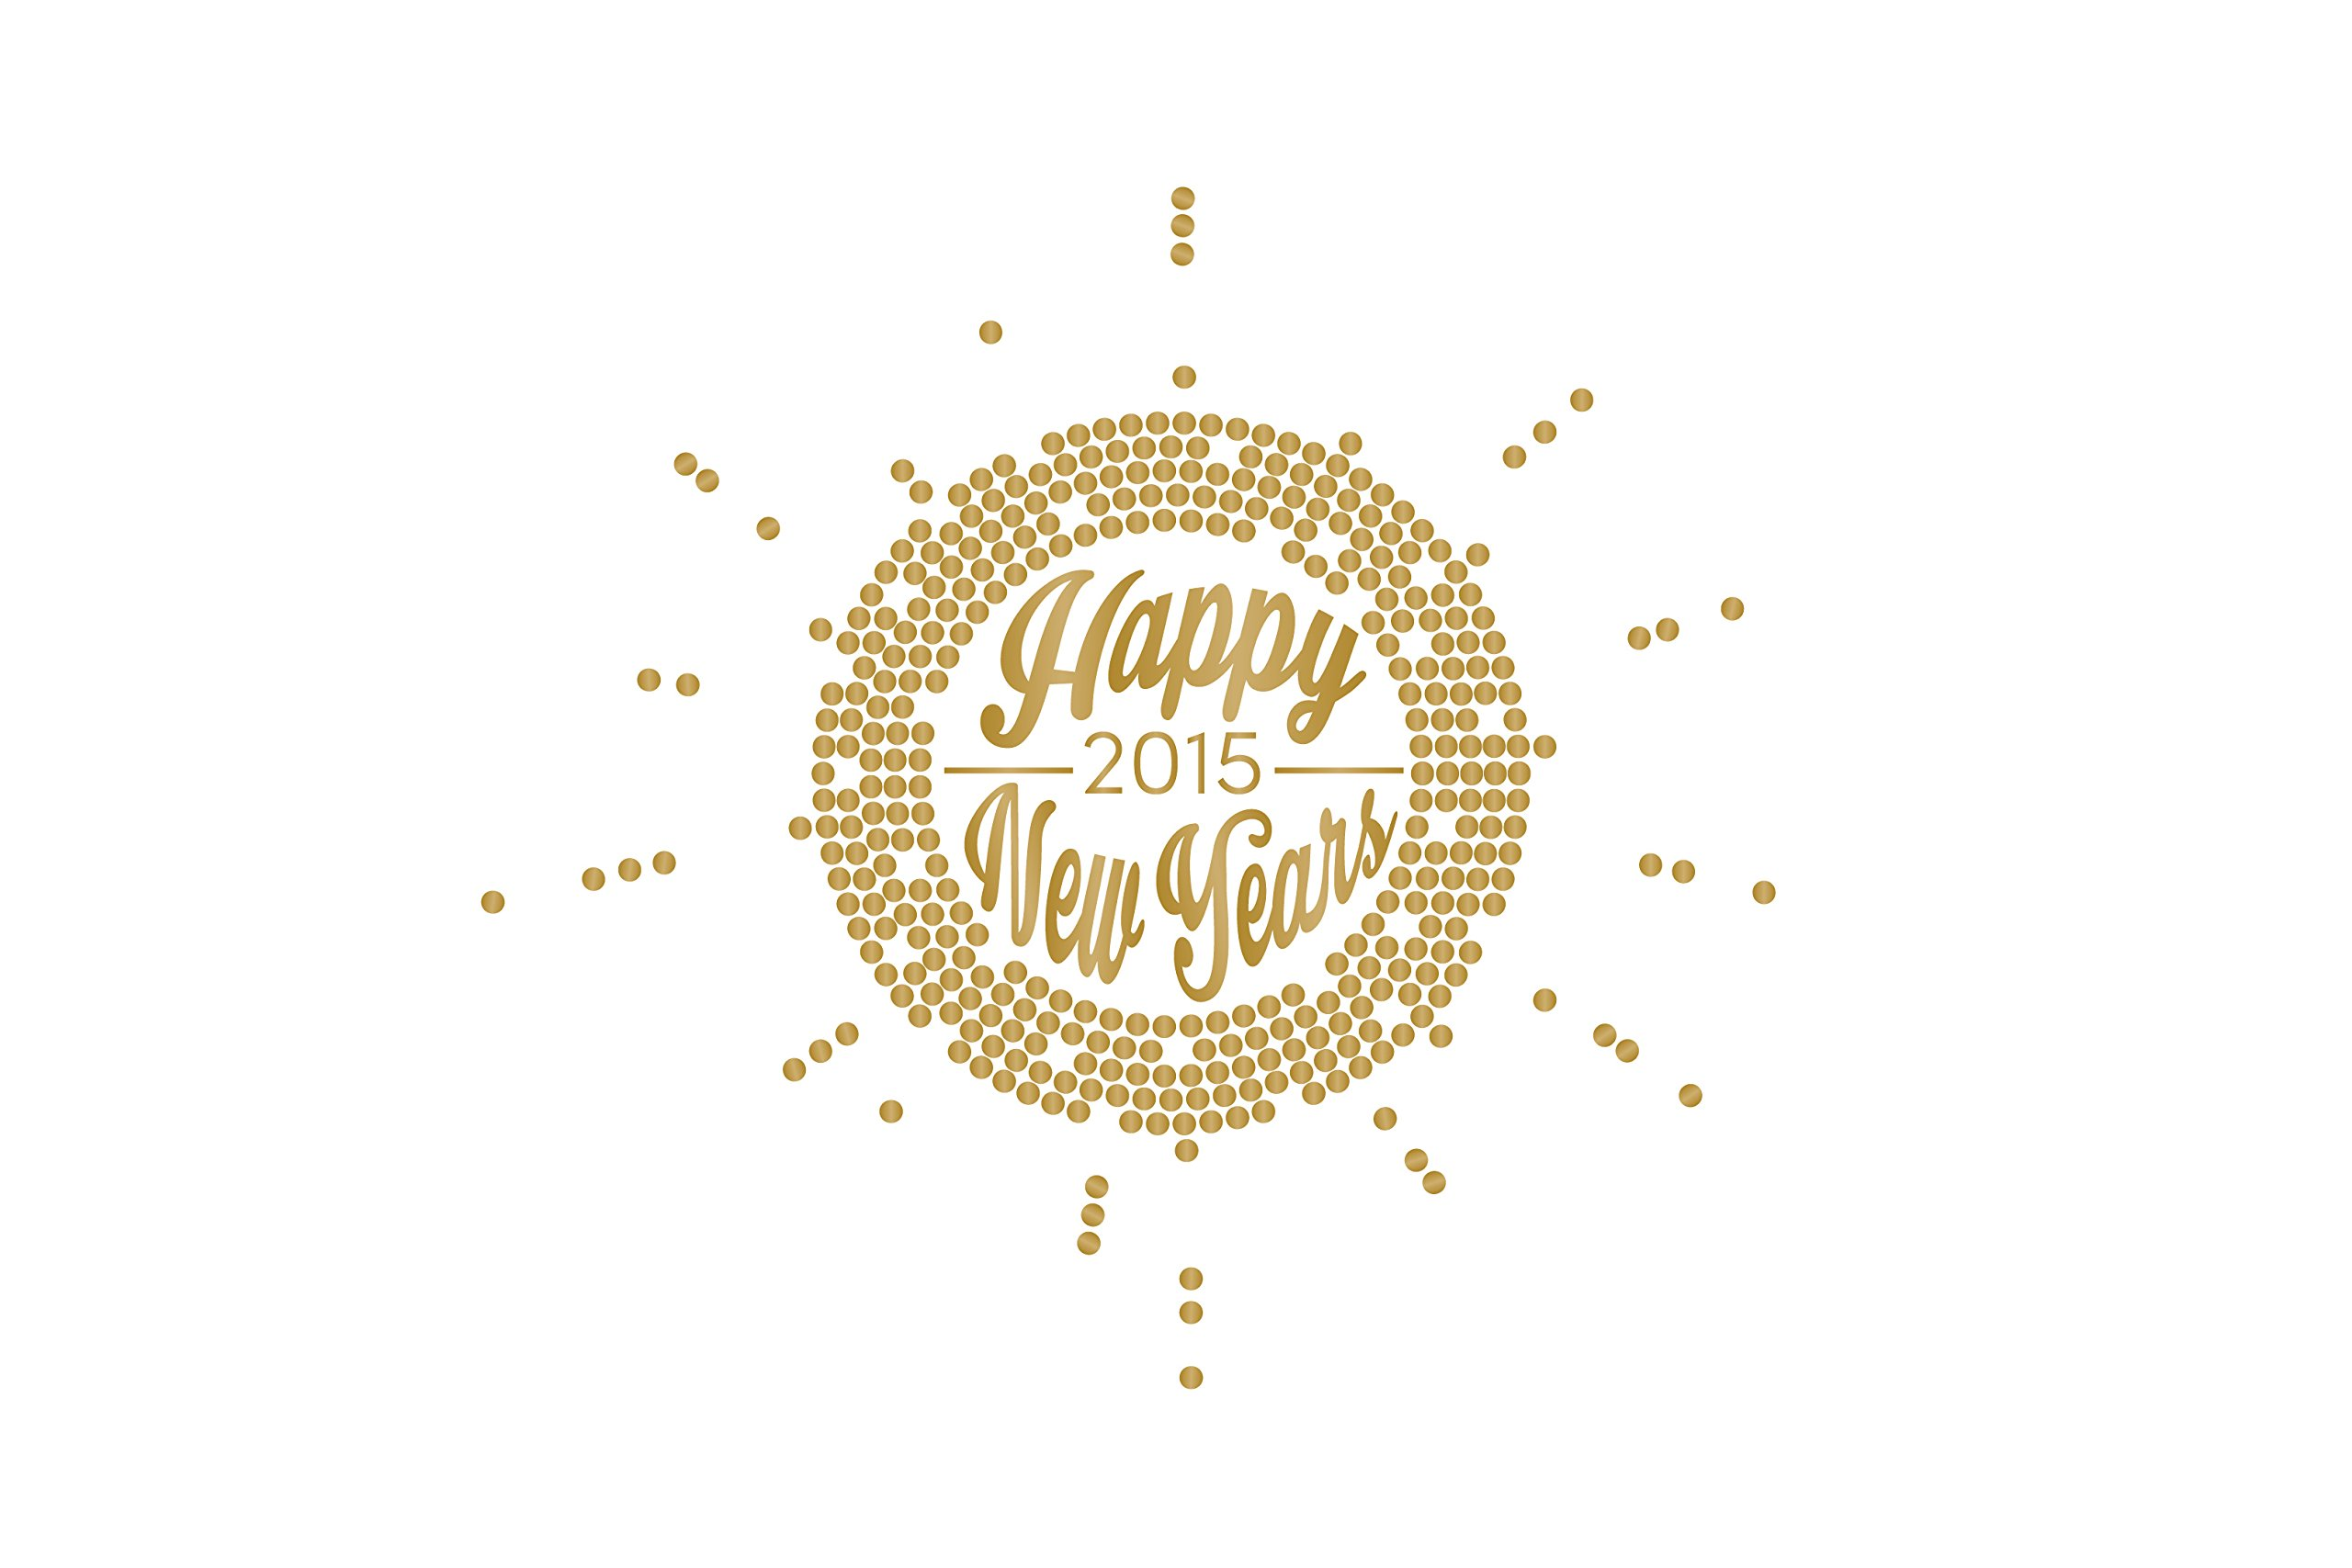 New Years Eve Matte Gold Burst - Vinyl Wall Art Decal for Homes, Offices, Kids Rooms, Nurseries, Schools, High Schools, Colleges, Universities, Interior Designers, Architects, Remodelers